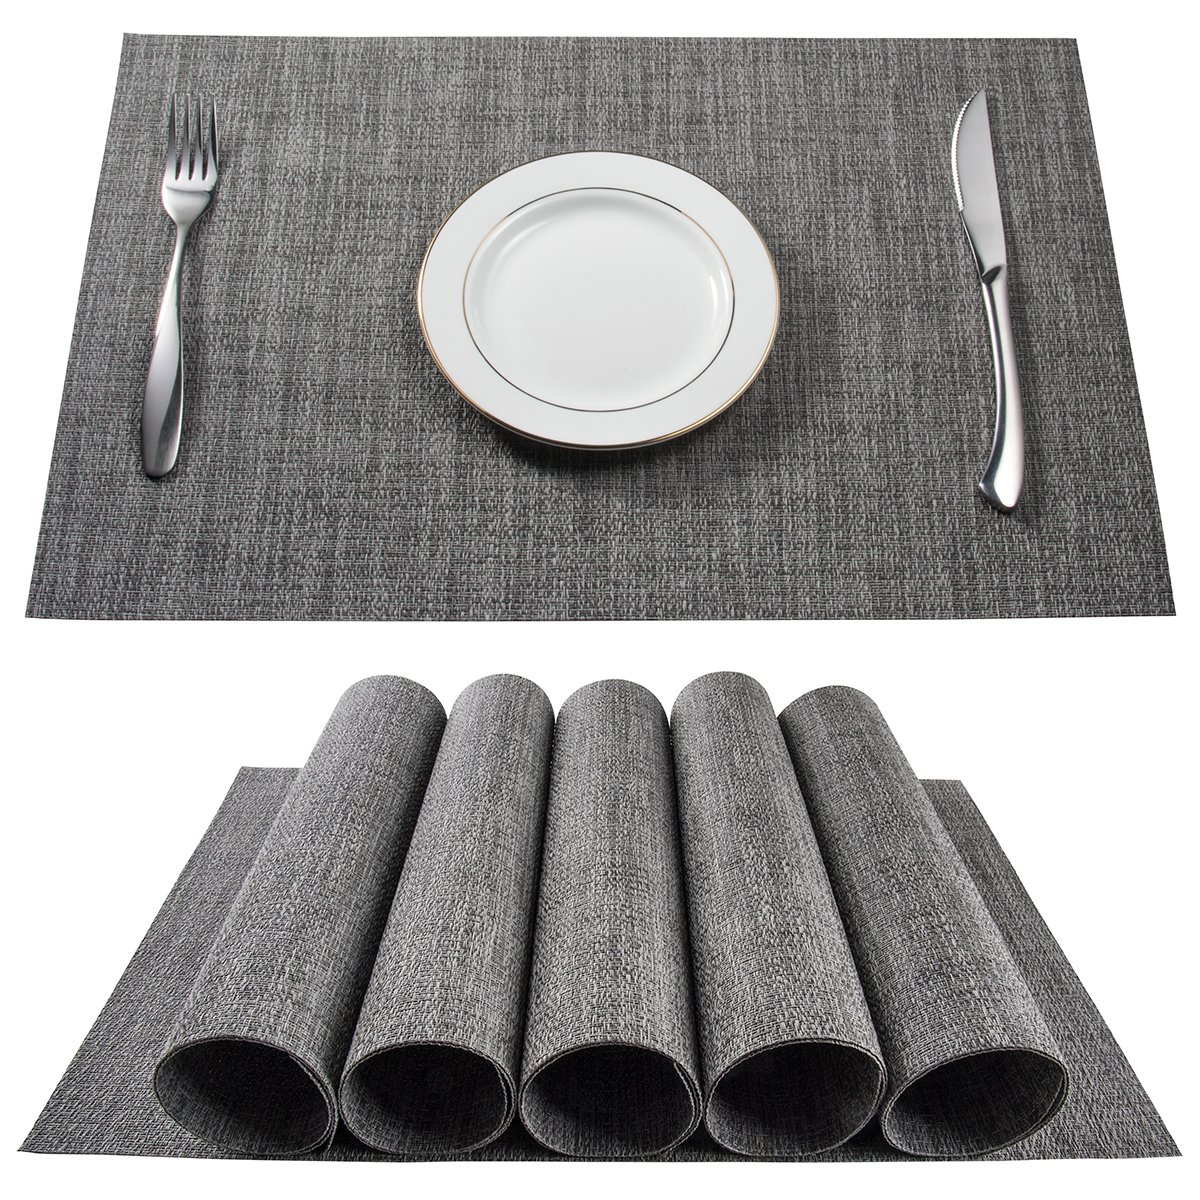 BETEAM Placemats, Heat-resistant Placemats Stain Resistant Anti-skid Washable PVC Table Mats Woven Vinyl Placemats, Set of 6 (Grey)